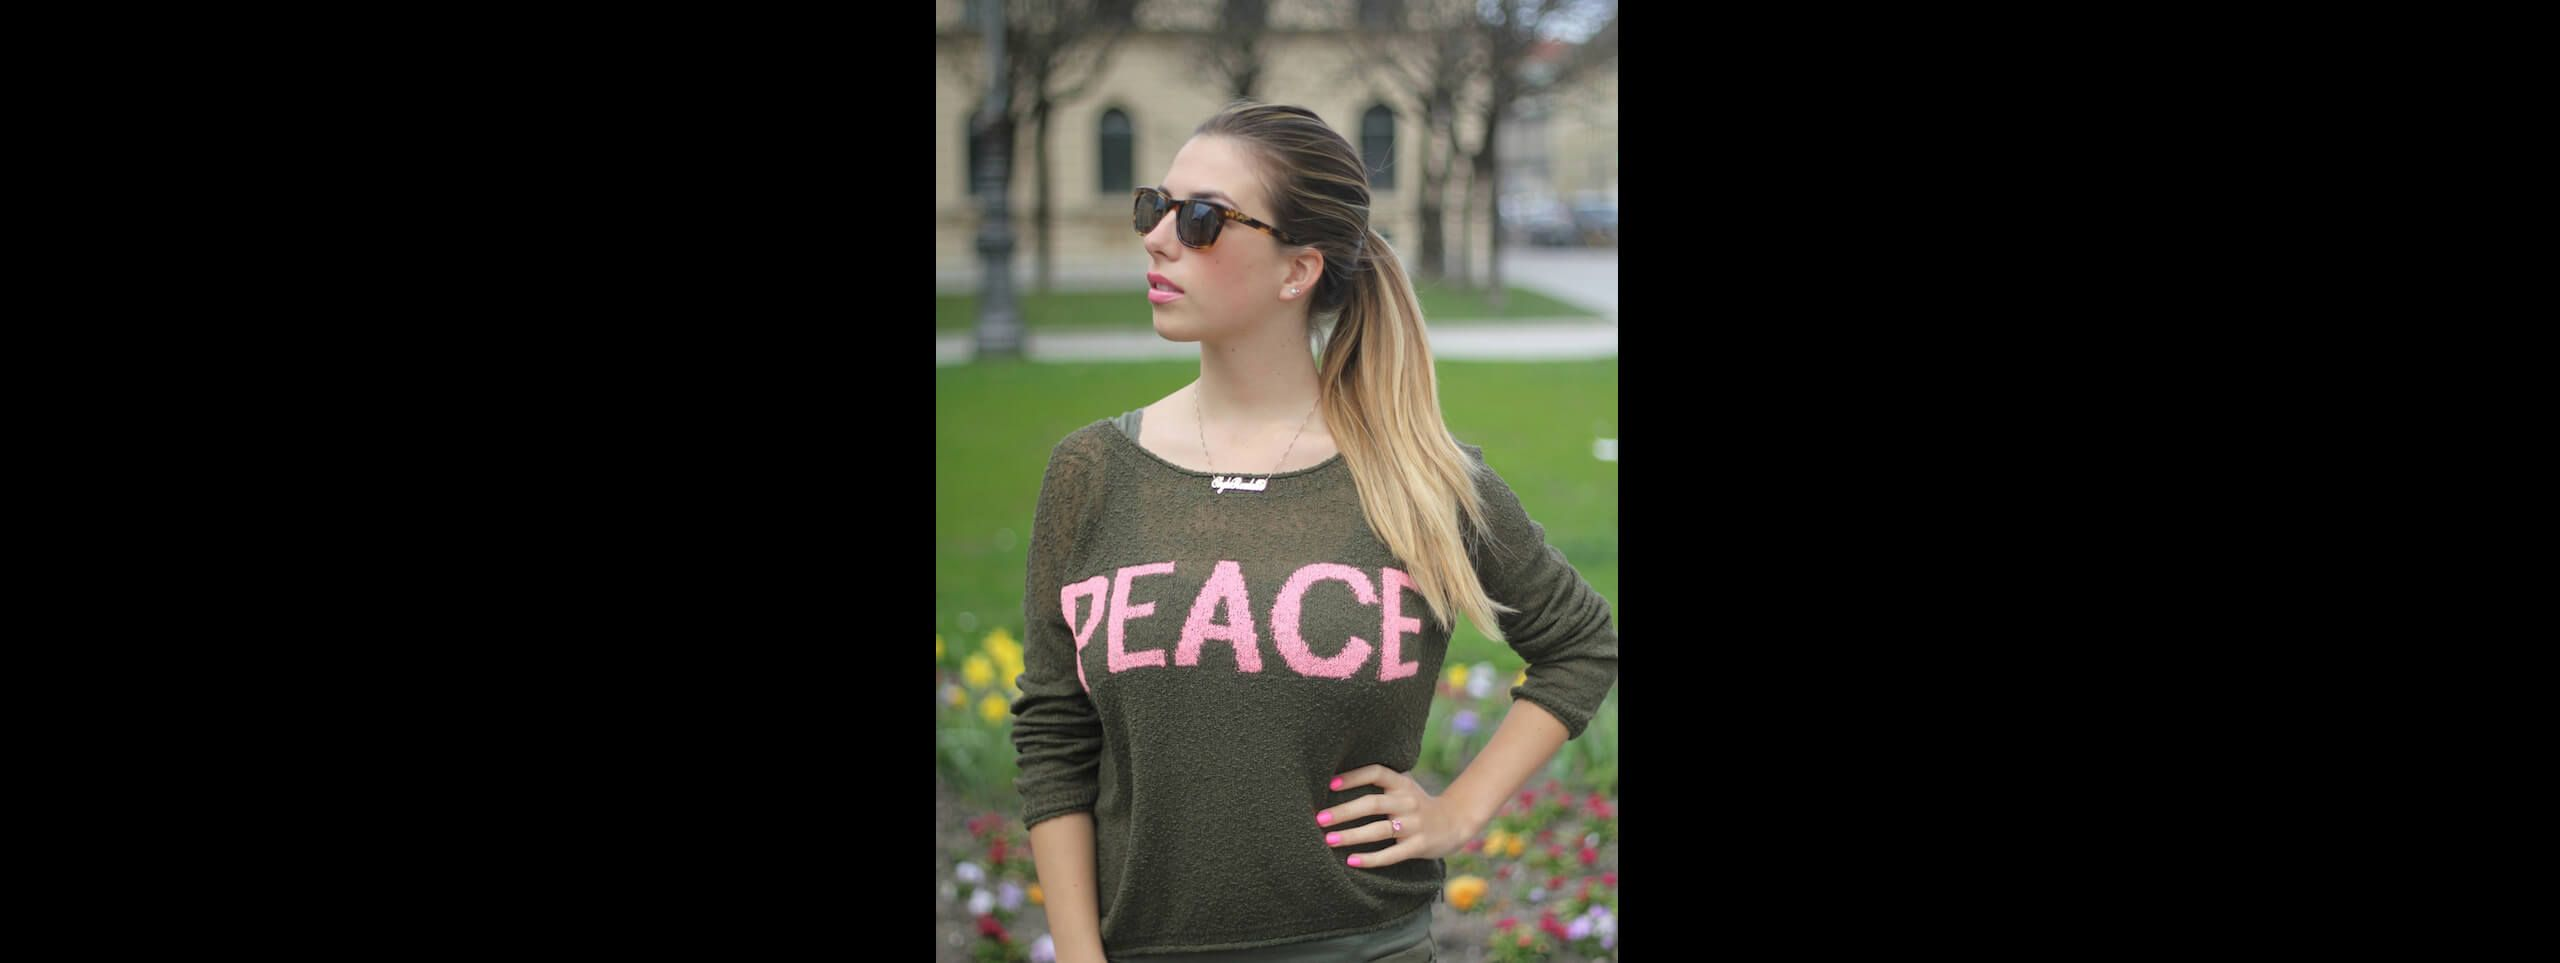 Woman wearing a peace shirt with golden brown hairstyle